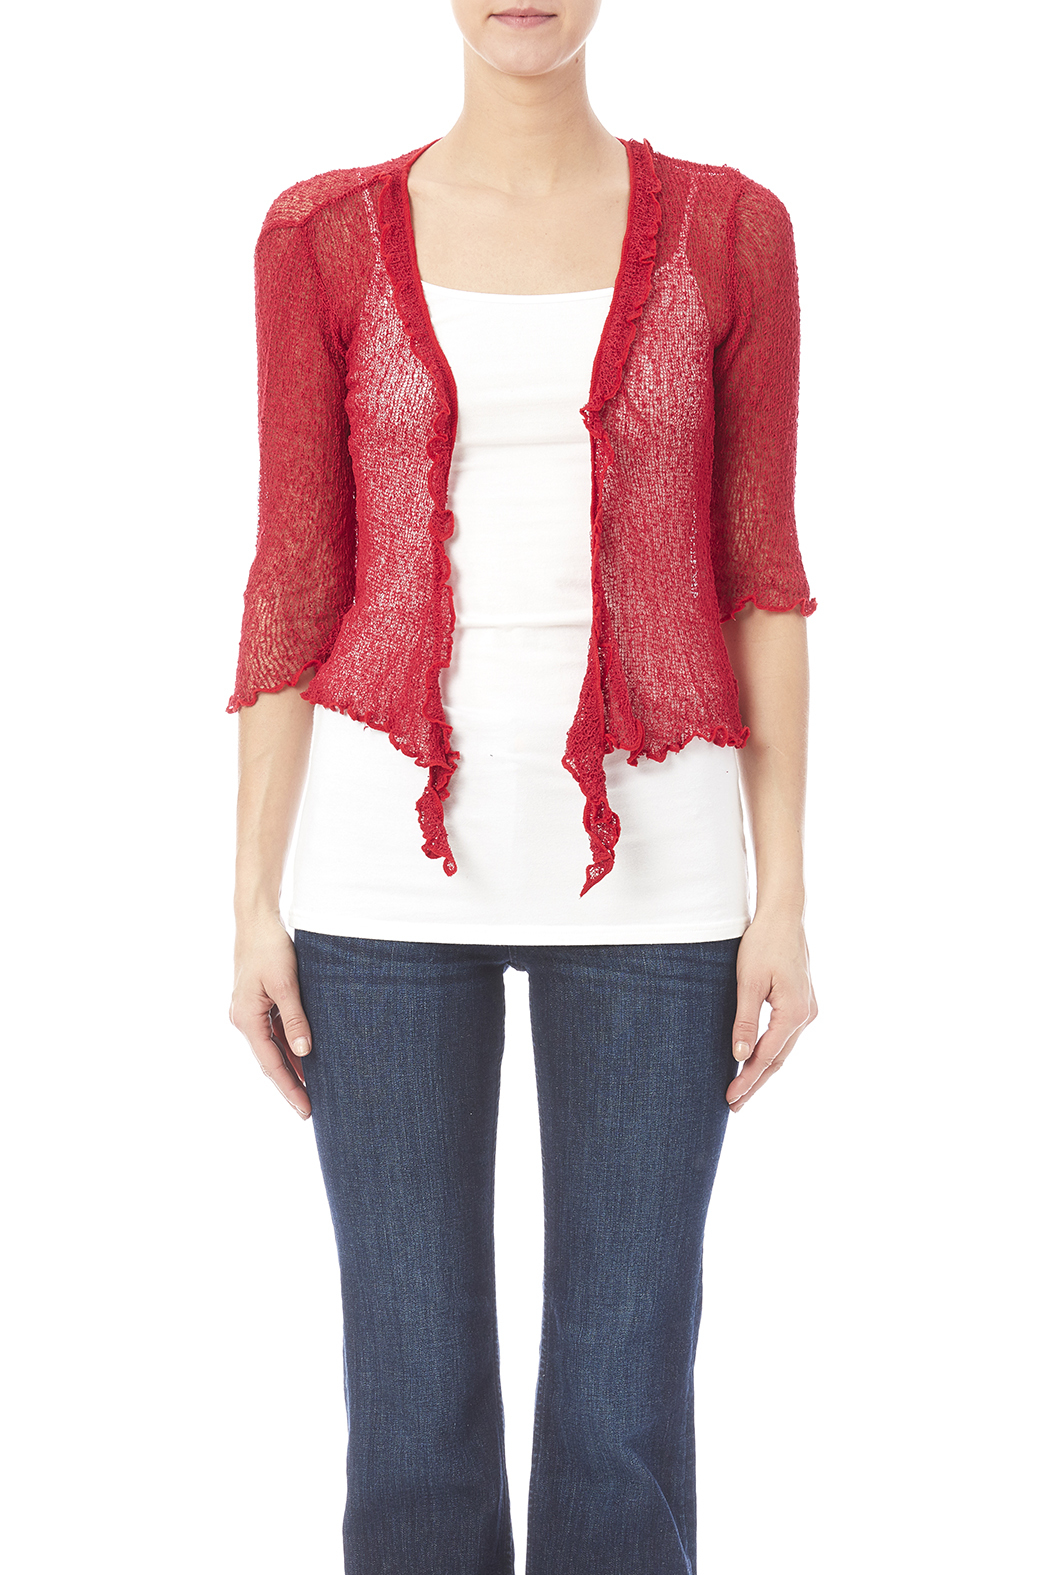 Scarborough Fair Red Ruffle Cardigan from Saint Paul by ...